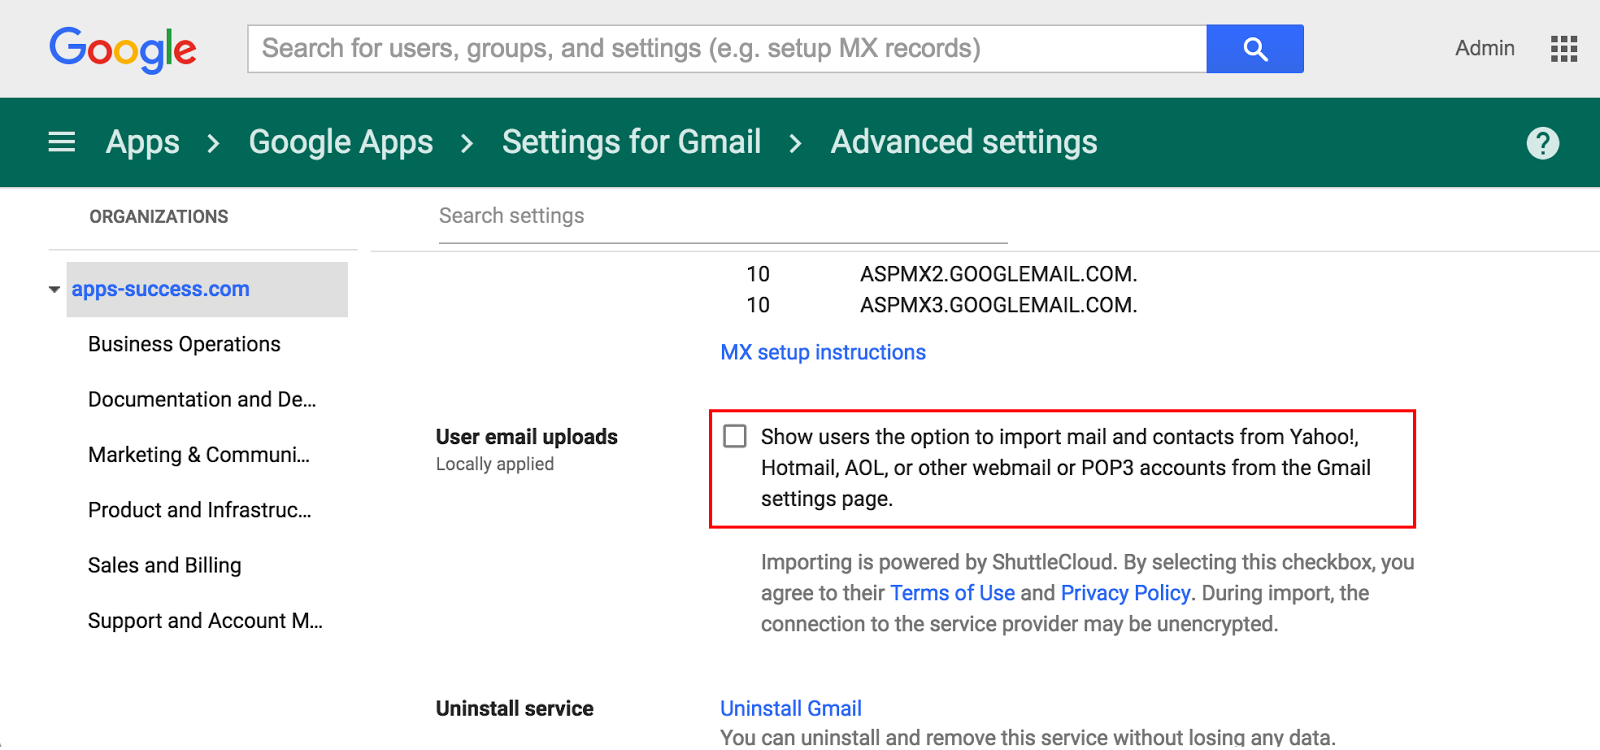 G Suite Updates Blog: User-initiated mail and contacts